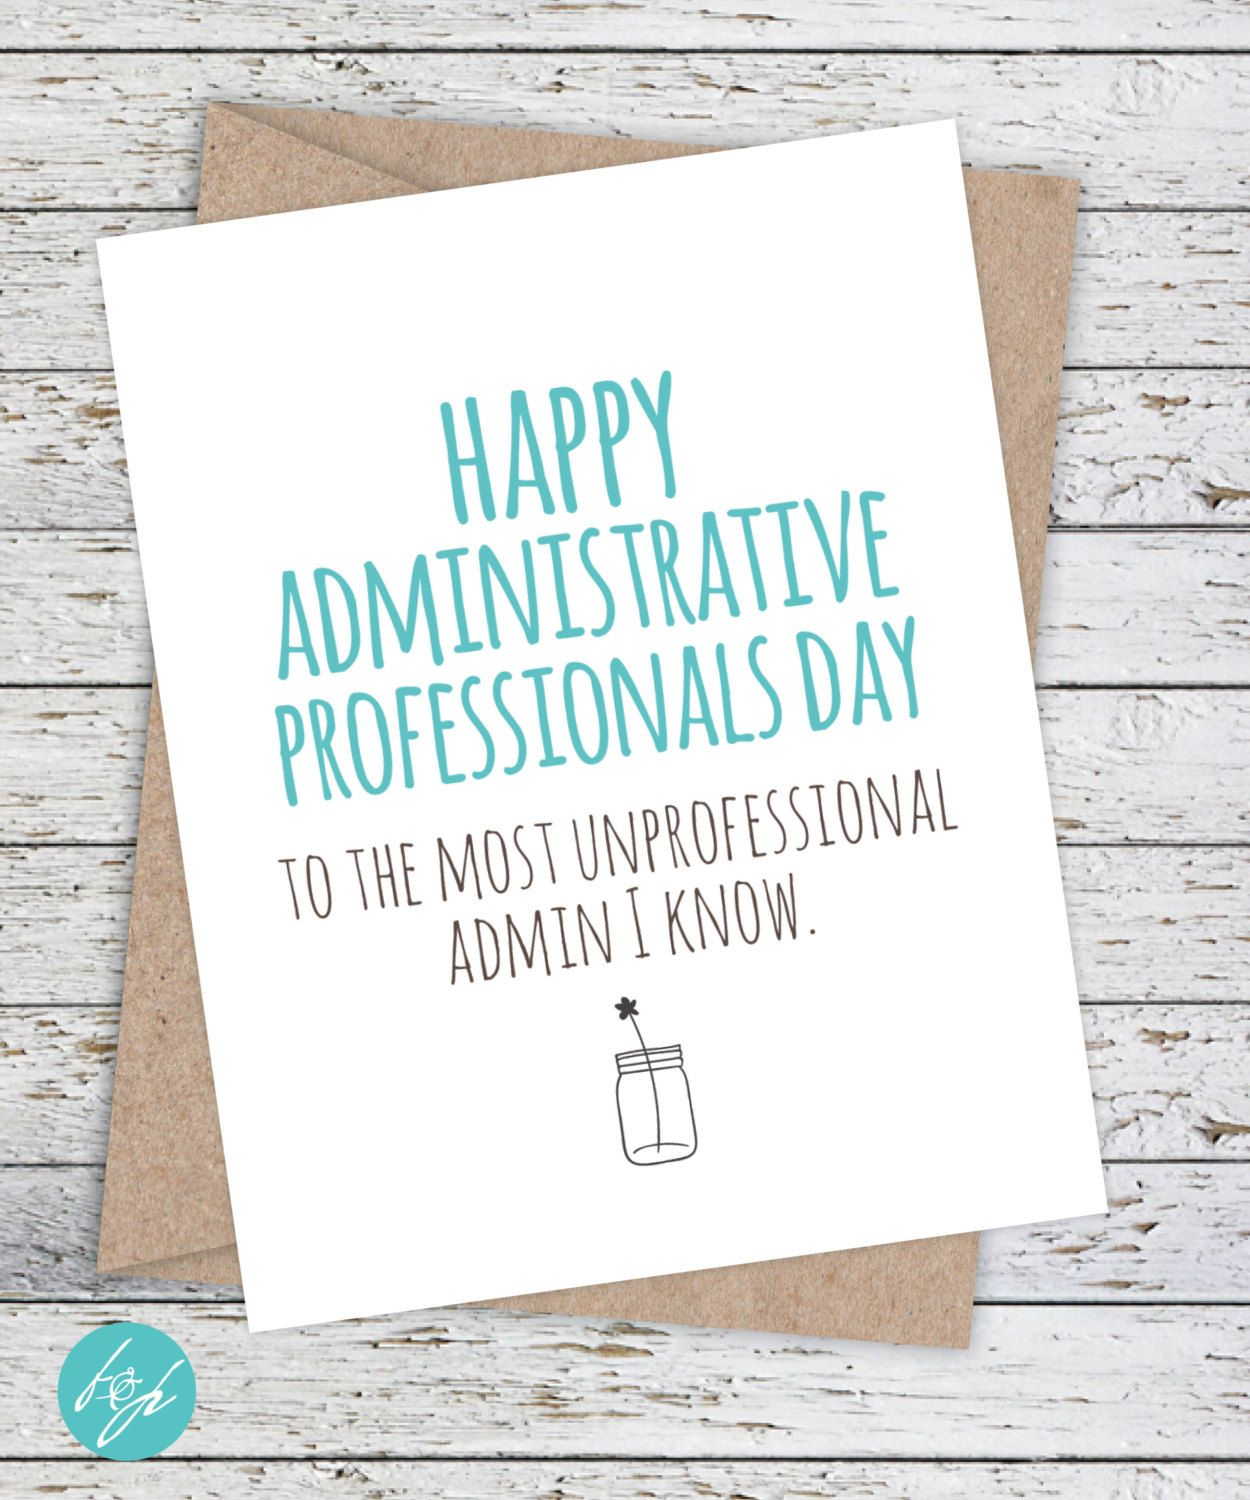 Schools Education3 18 19south Haven: Funny Administrative Professionals Day Cards